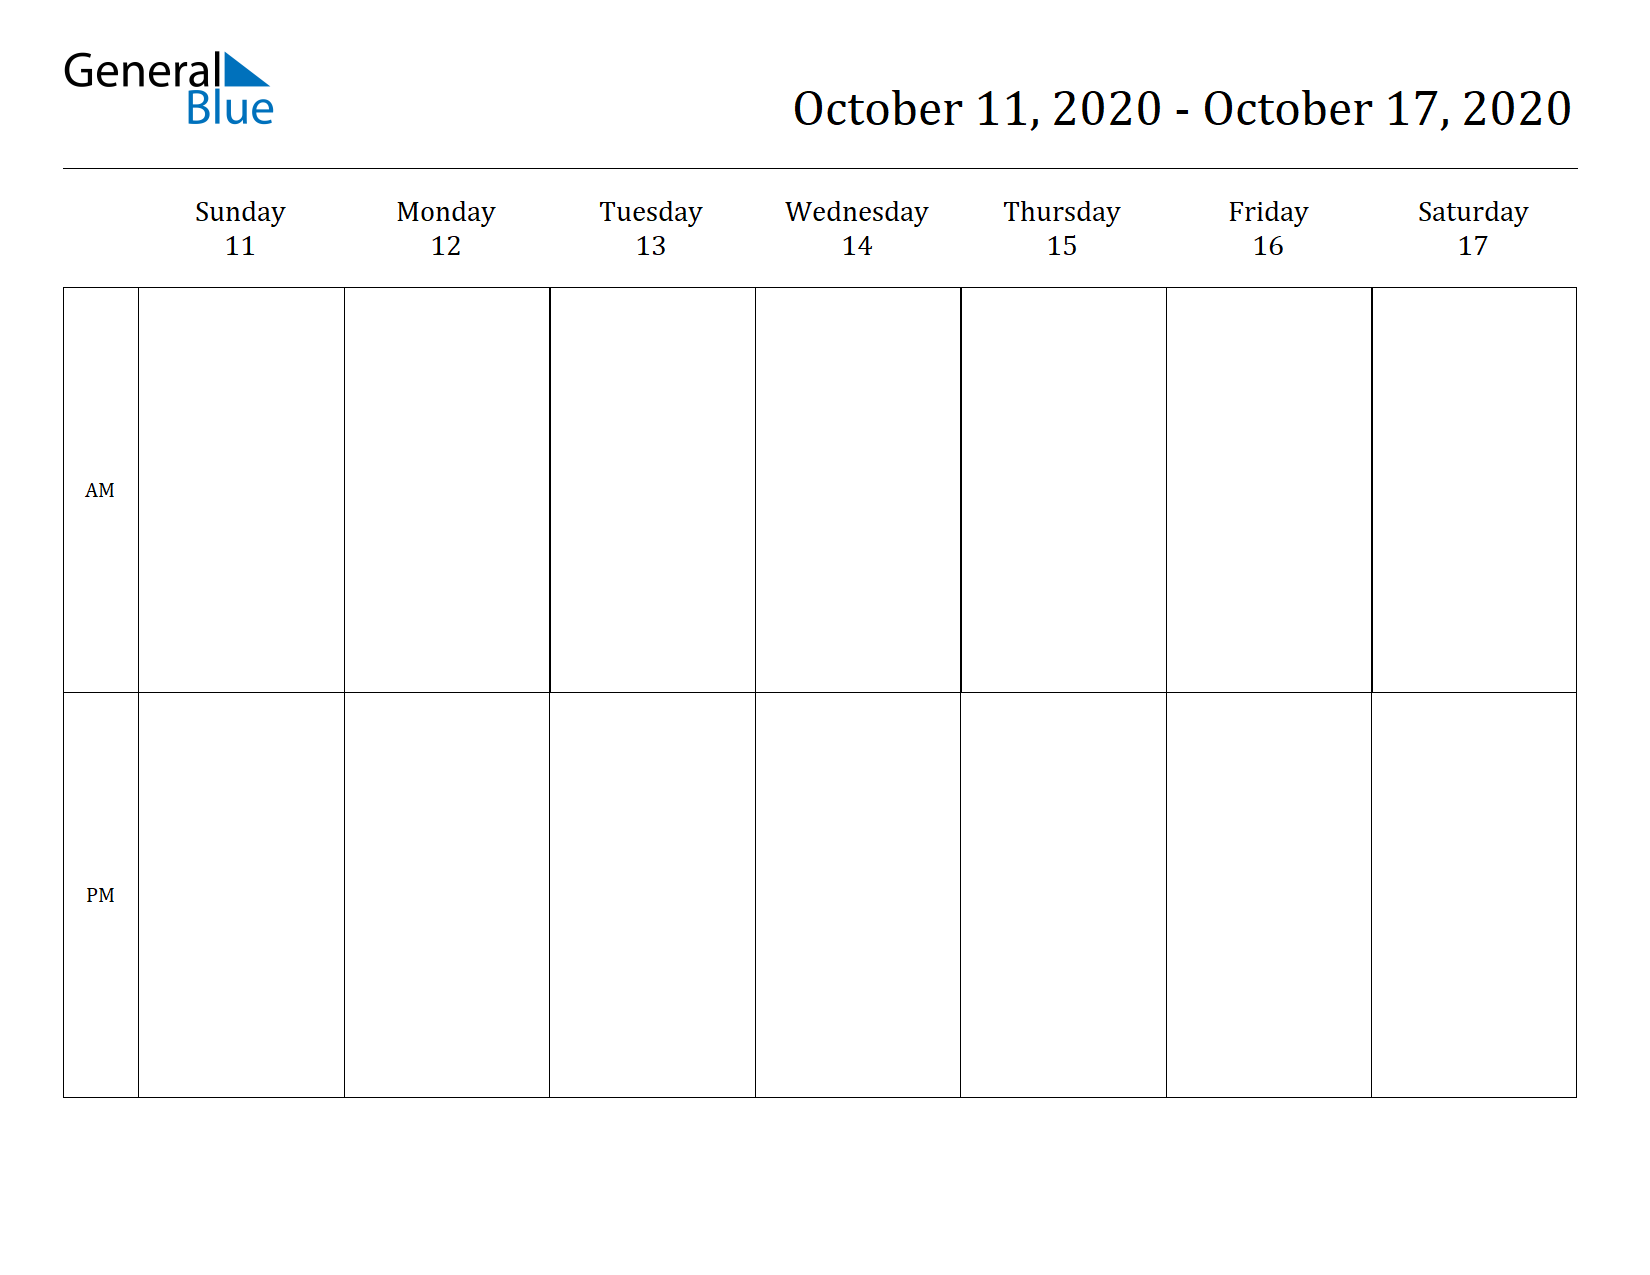 Weekly Calendar for Oct 11, 2020 to Oct 17, 2020